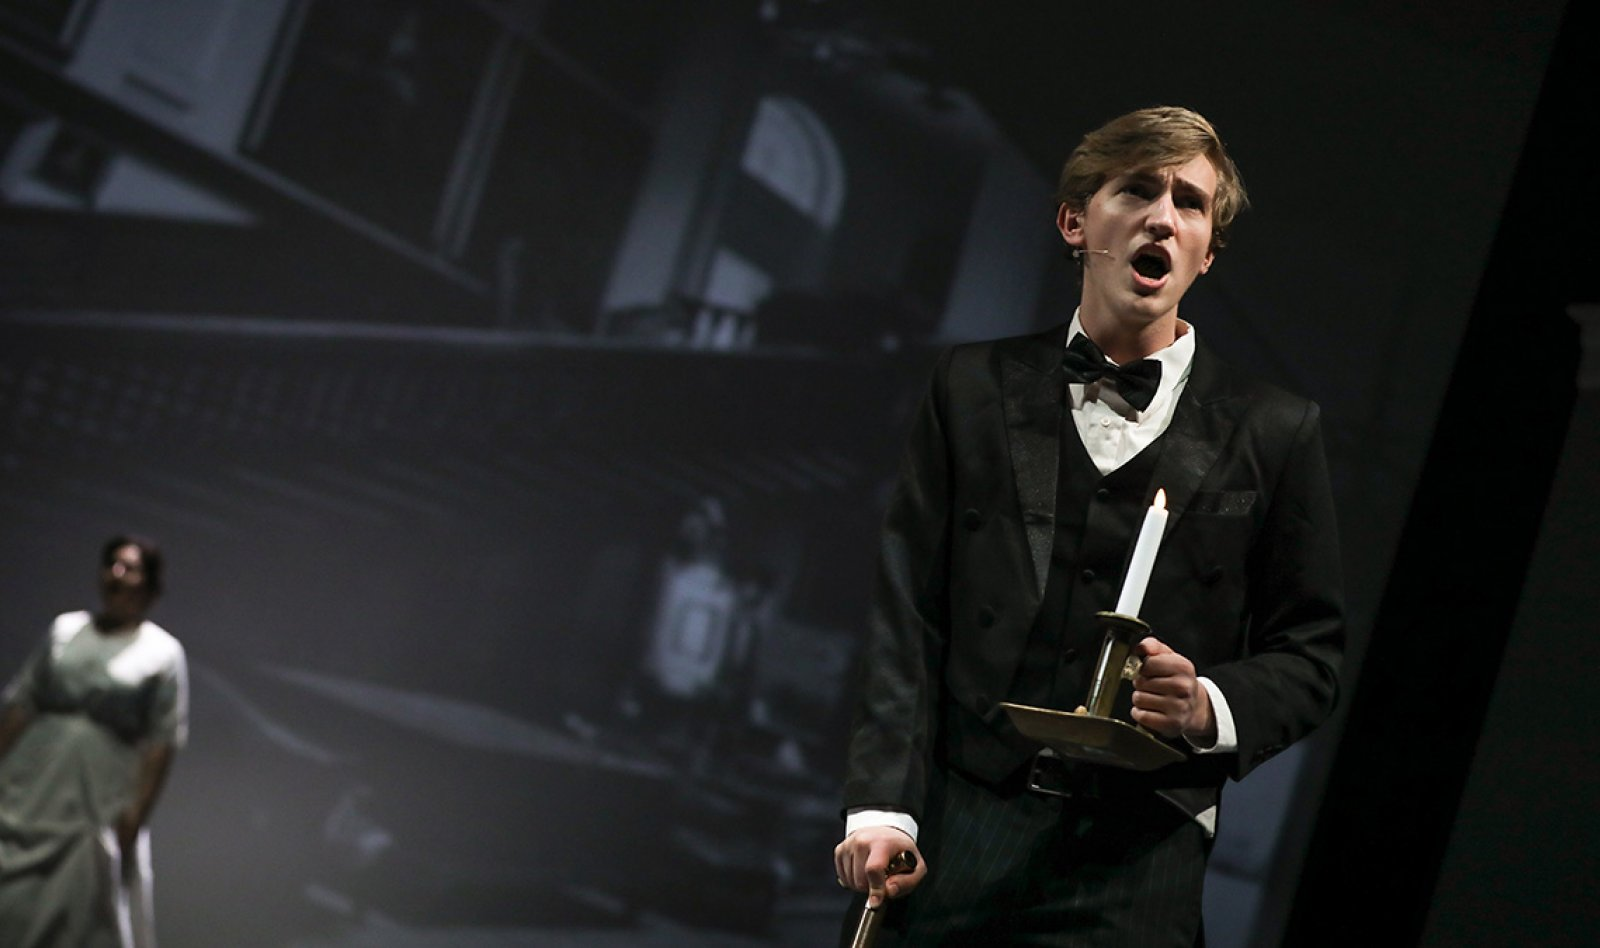 Oliver on stage in the Goel Center for Theater and Dance